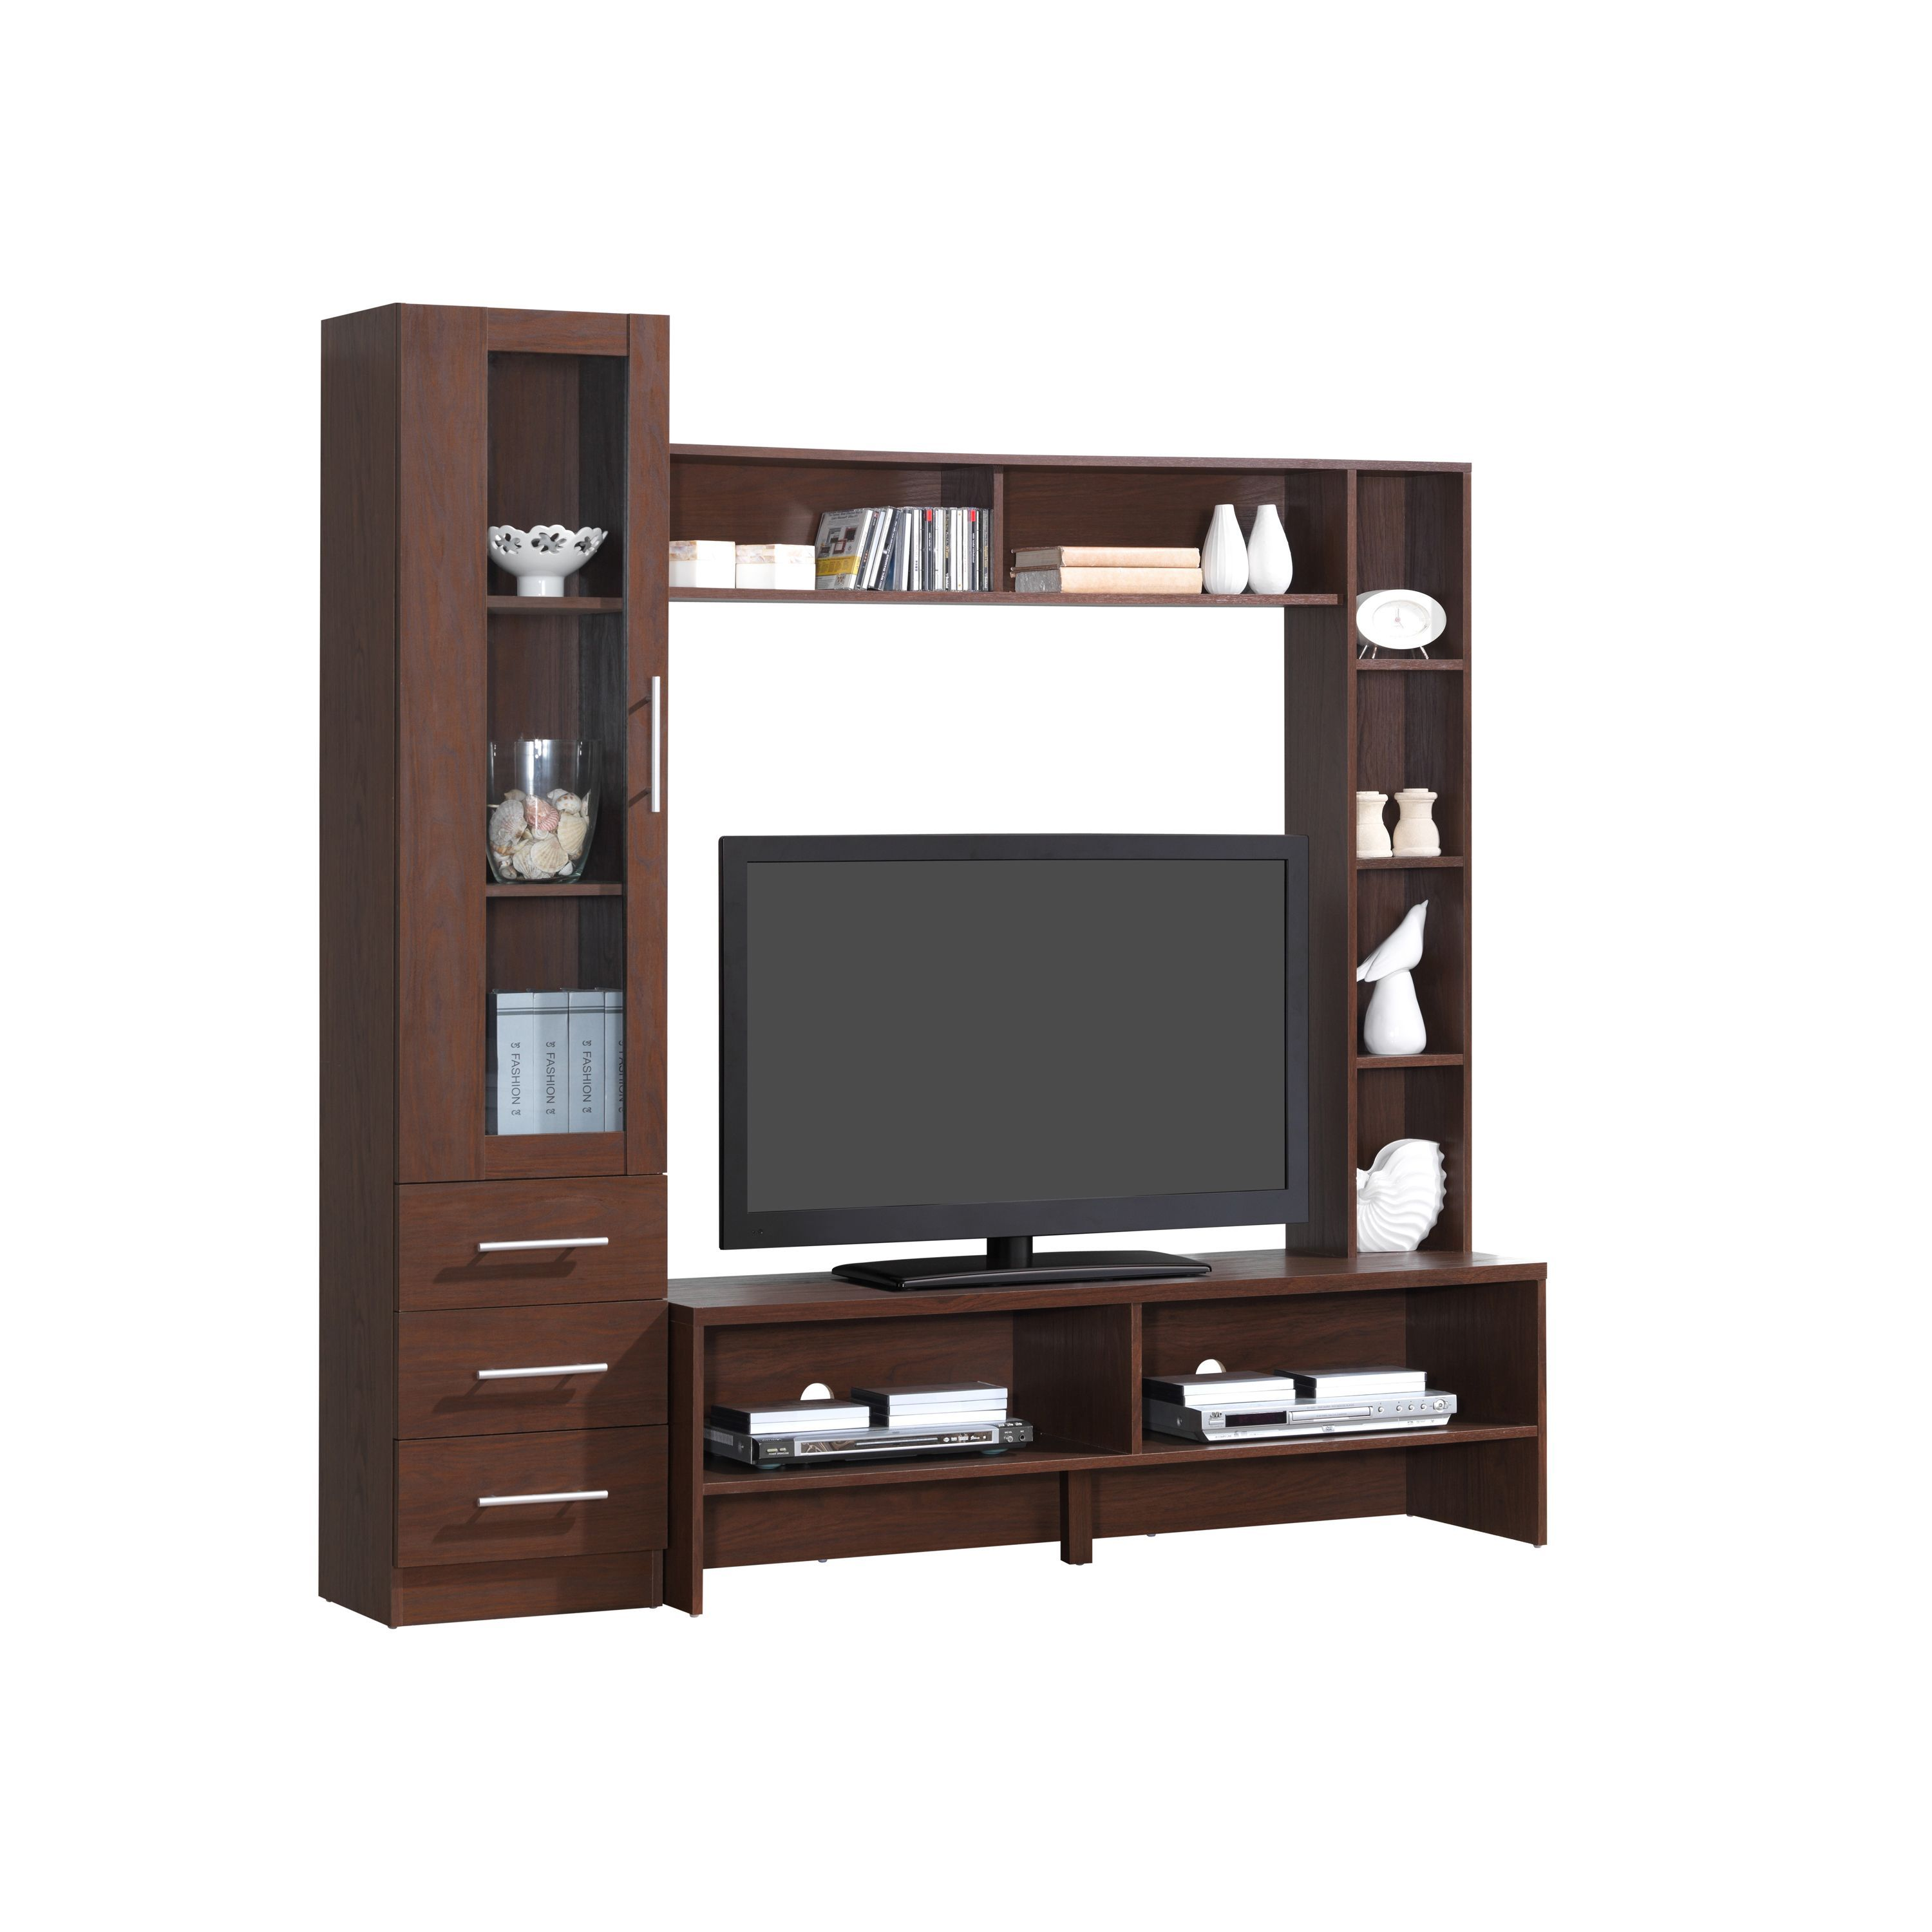 Enterprises Modern Designs Brown Wood 50 Inch Tv Open Storage Entertainment Center Hickory